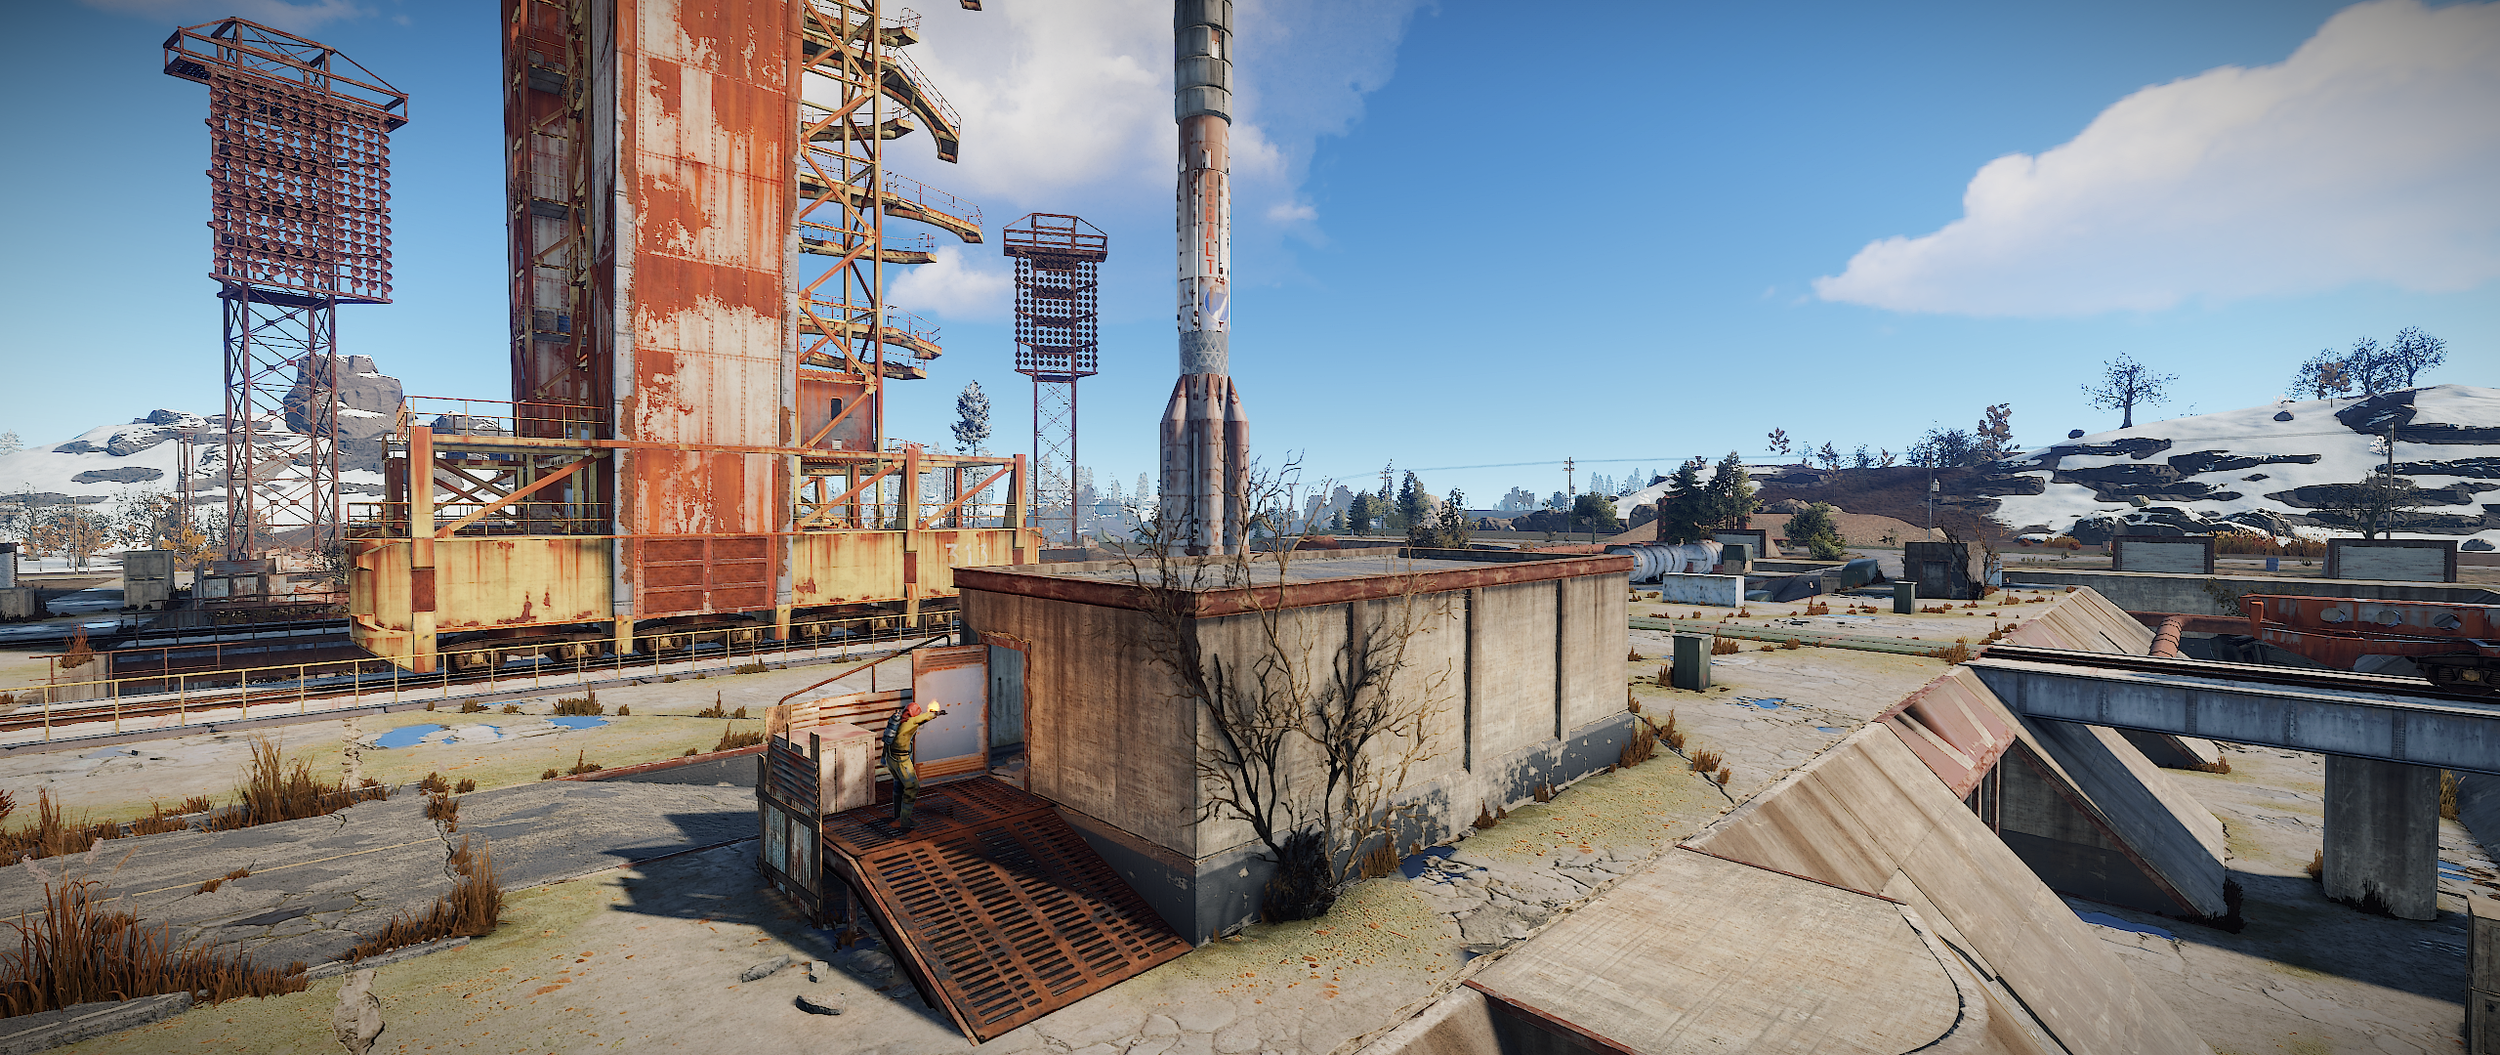 Head past the rocket to the stone building with metal ramp